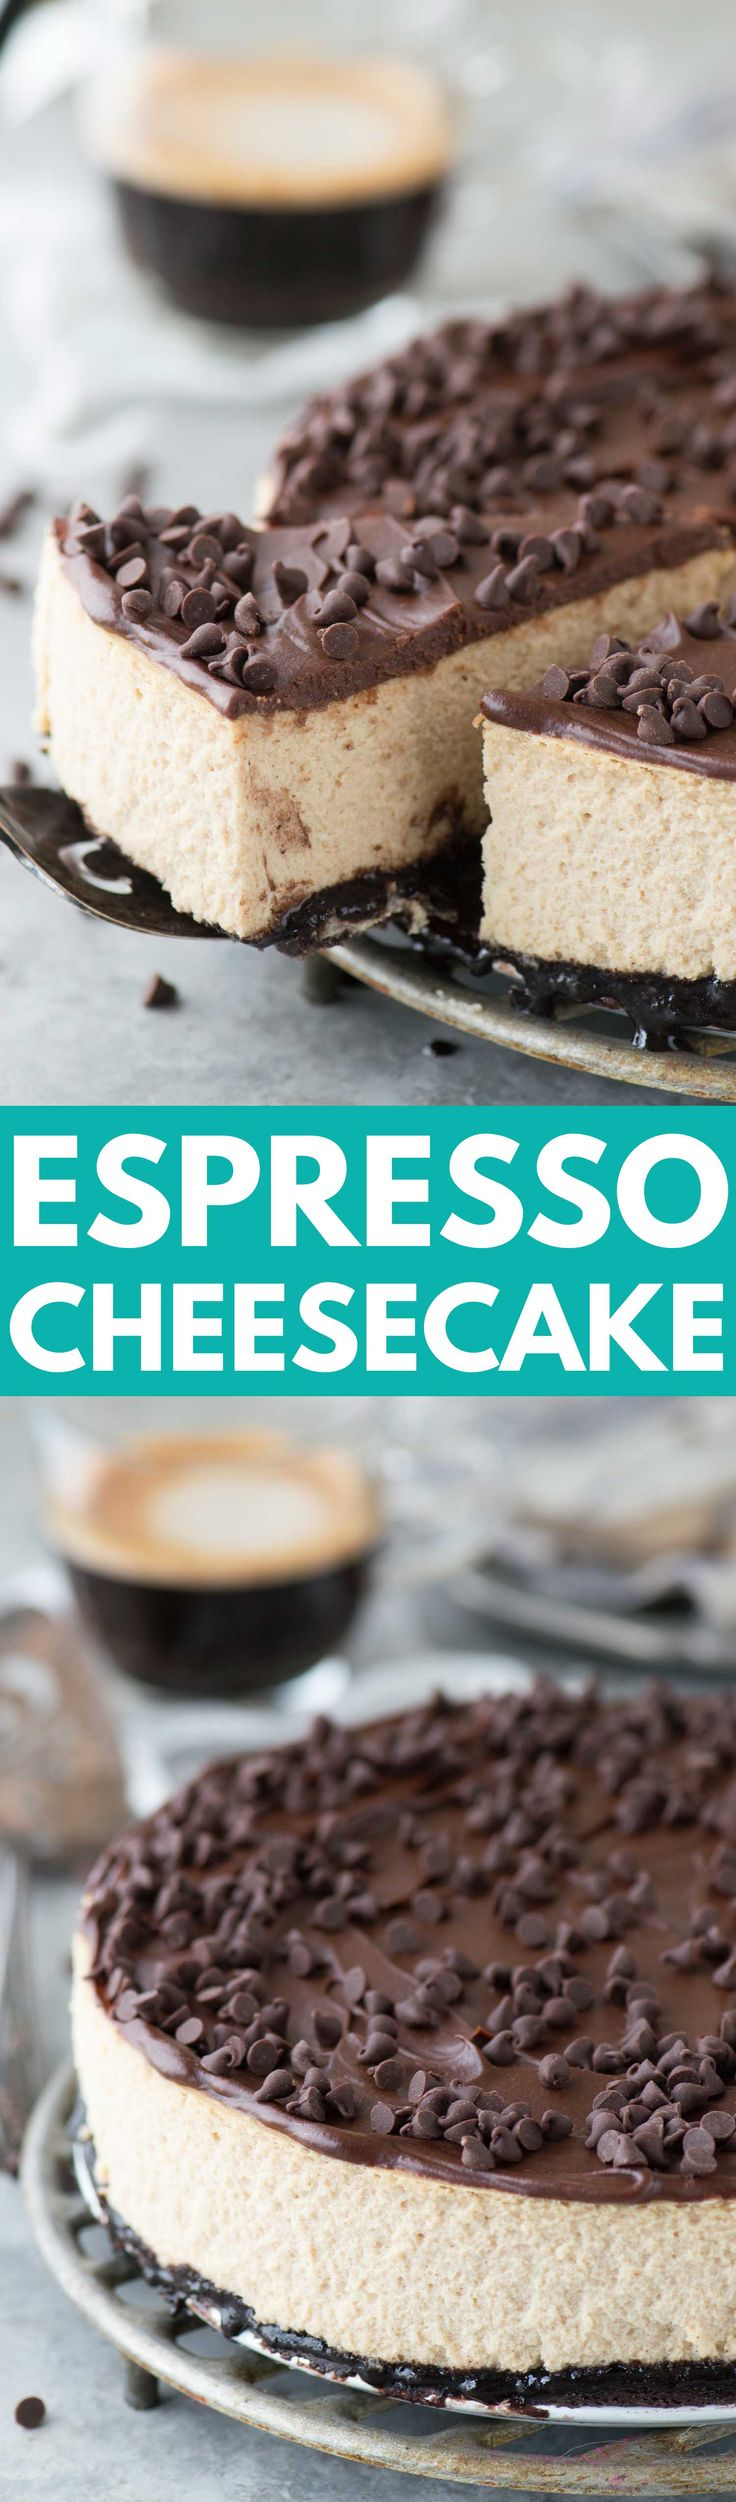 The most amazing espresso cheesecake with an oreo crust and a layer of chocolate ganache! This cheesecake has real espresso in it!: